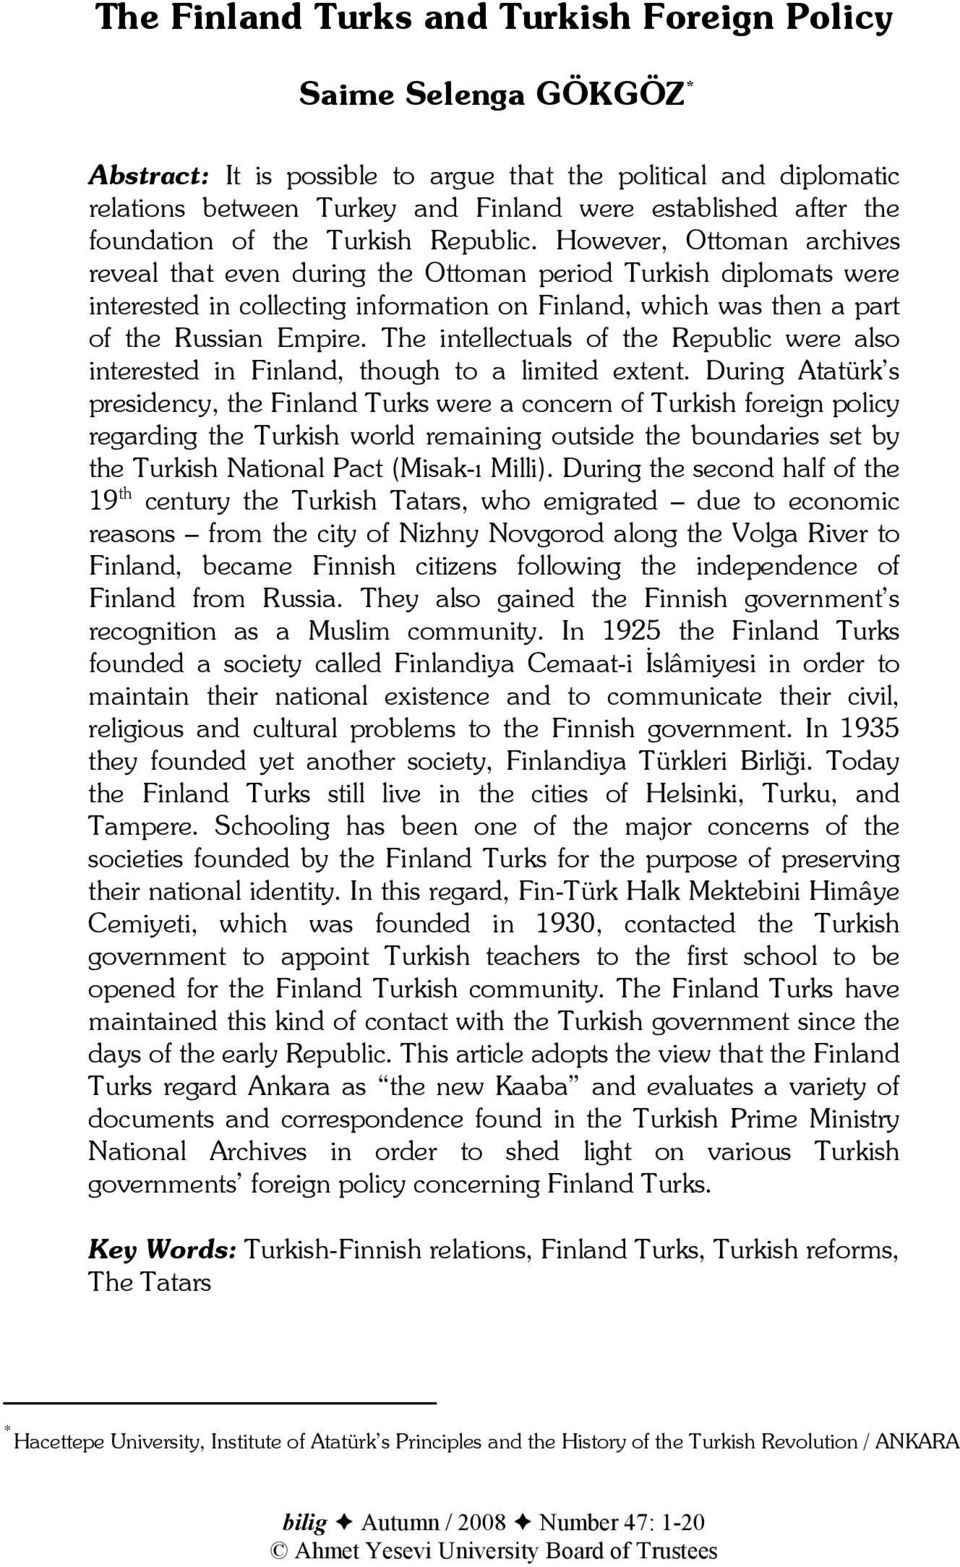 However, Ottoman archives reveal that even during the Ottoman period Turkish diplomats were interested in collecting information on Finland, which was then a part of the Russian Empire.